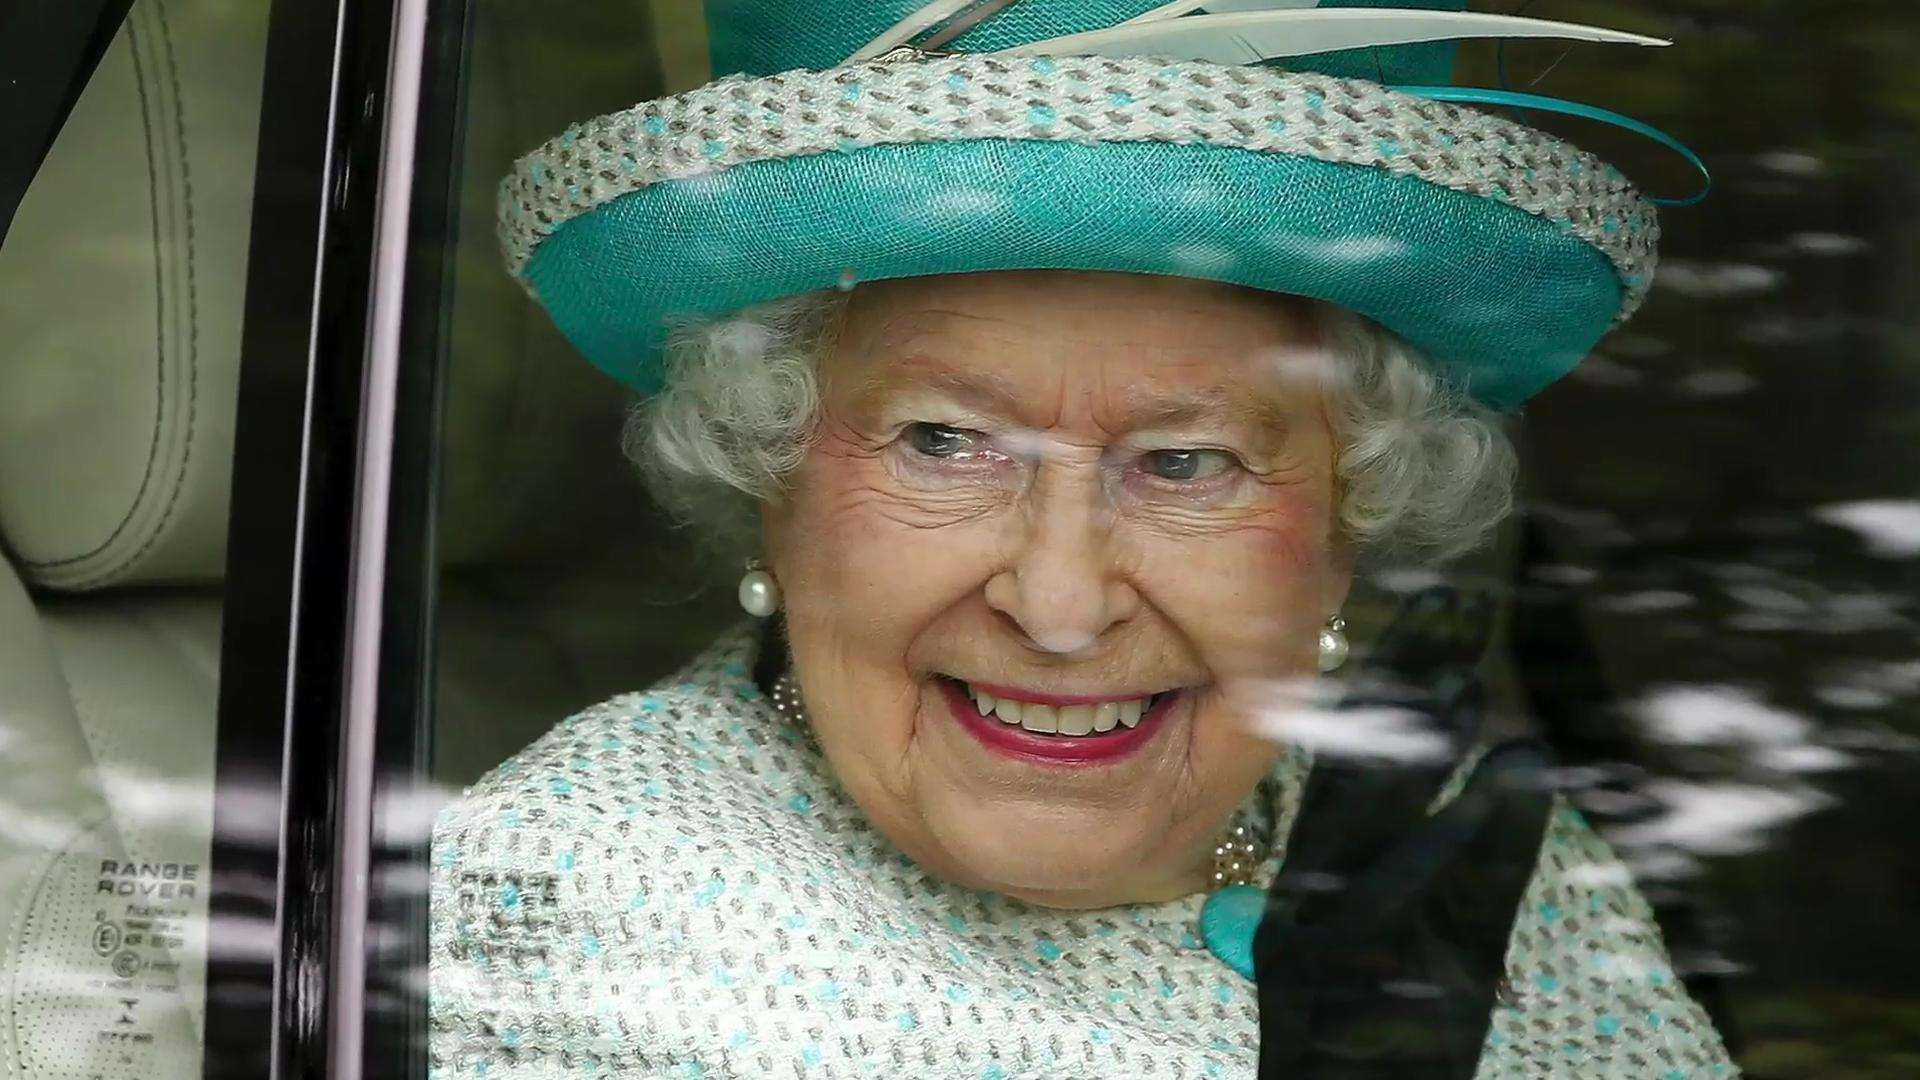 Tweet sparks rumor Queen Elizabeth is dead